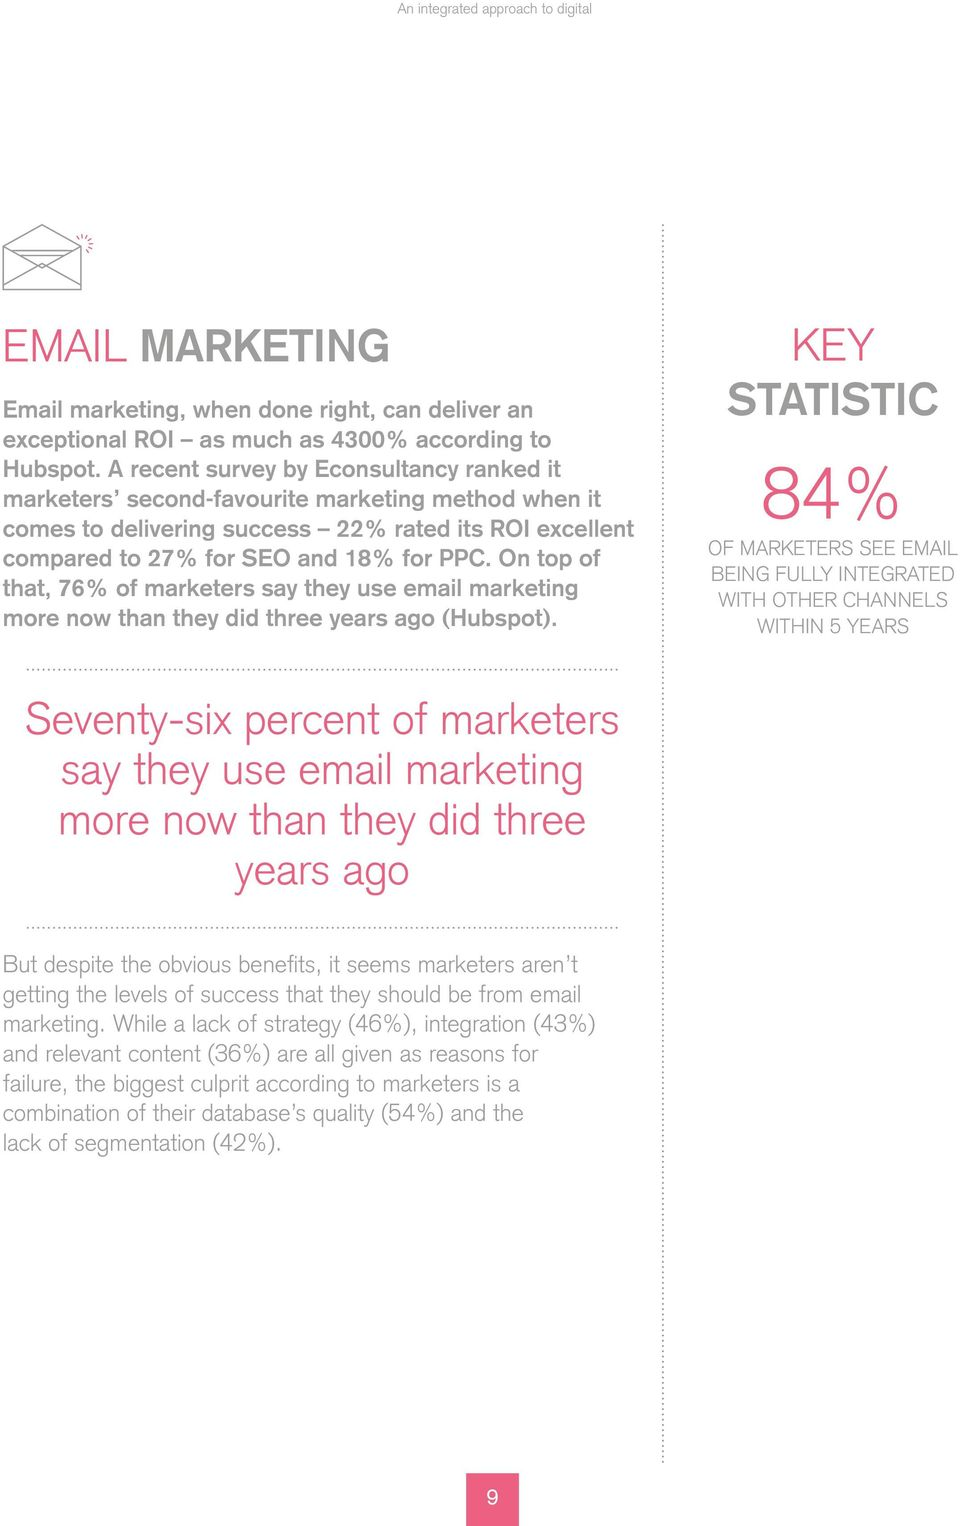 On top of that, 76% of marketers say they use email marketing more now than they did three years ago (Hubspot).